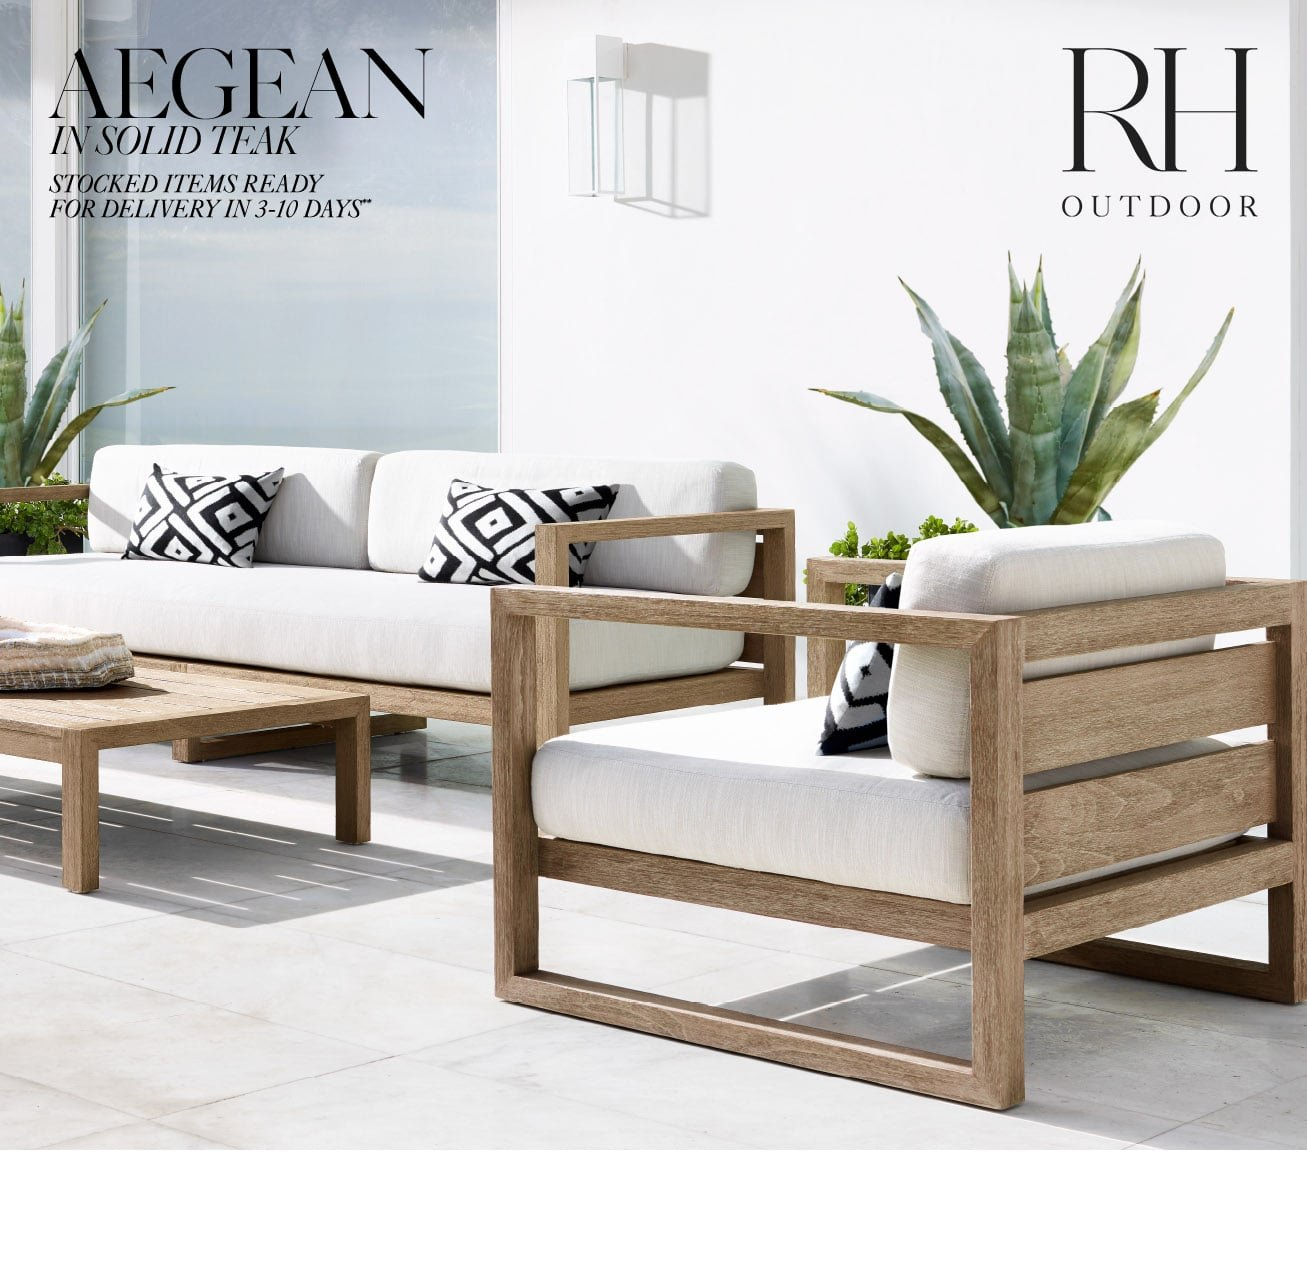 Fabulous Restoration Hardware The Aegean Outdoor Collection In 2 Download Free Architecture Designs Scobabritishbridgeorg